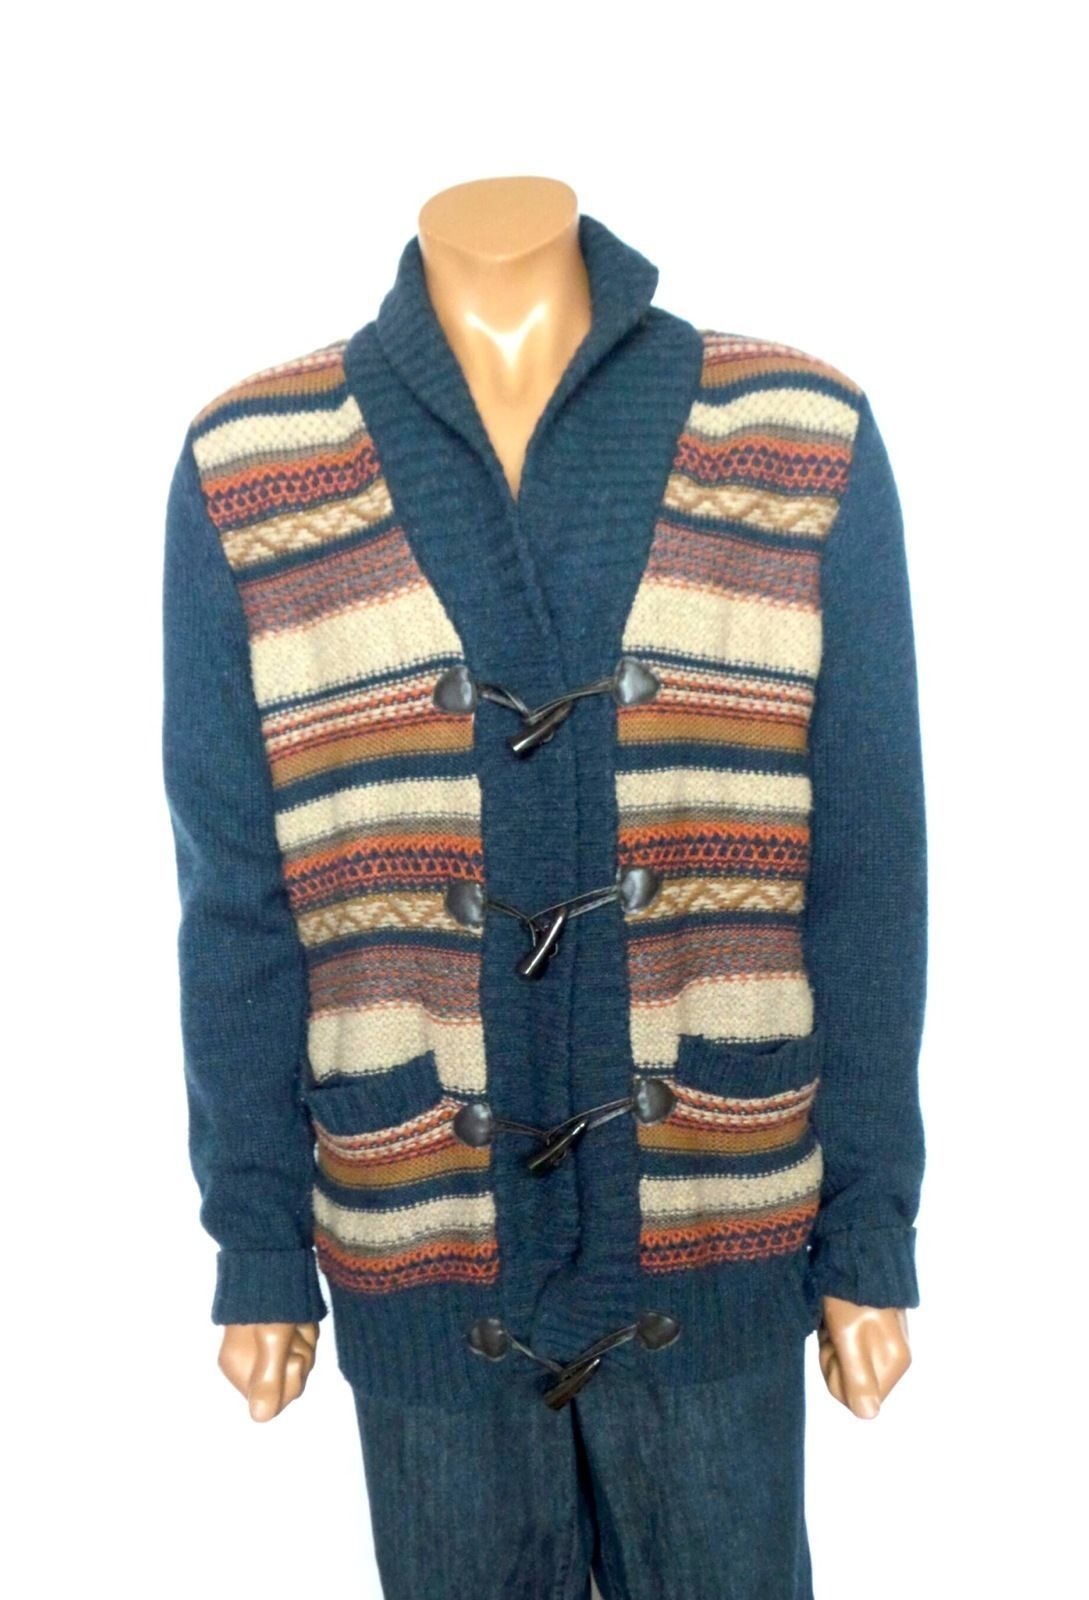 H&M Men's Cardigan Sweater Size Large | eBay | Men's Sweaters and ...